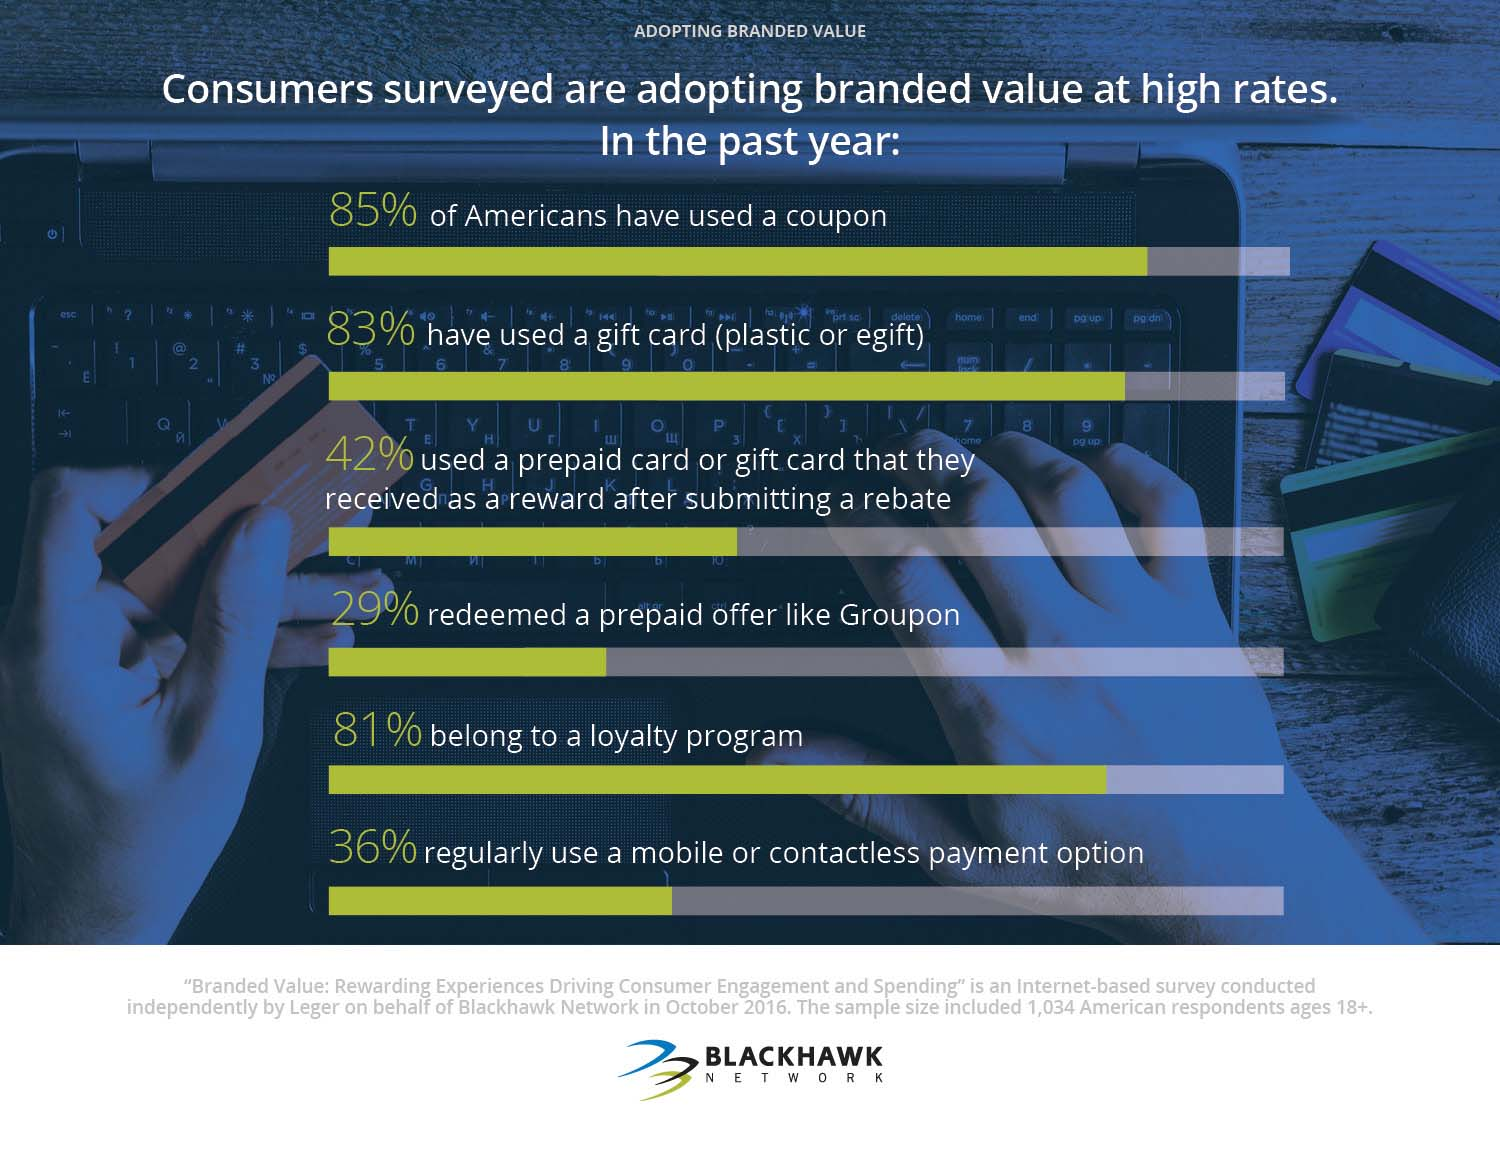 Consumers are using different forms of branded value at high rates.